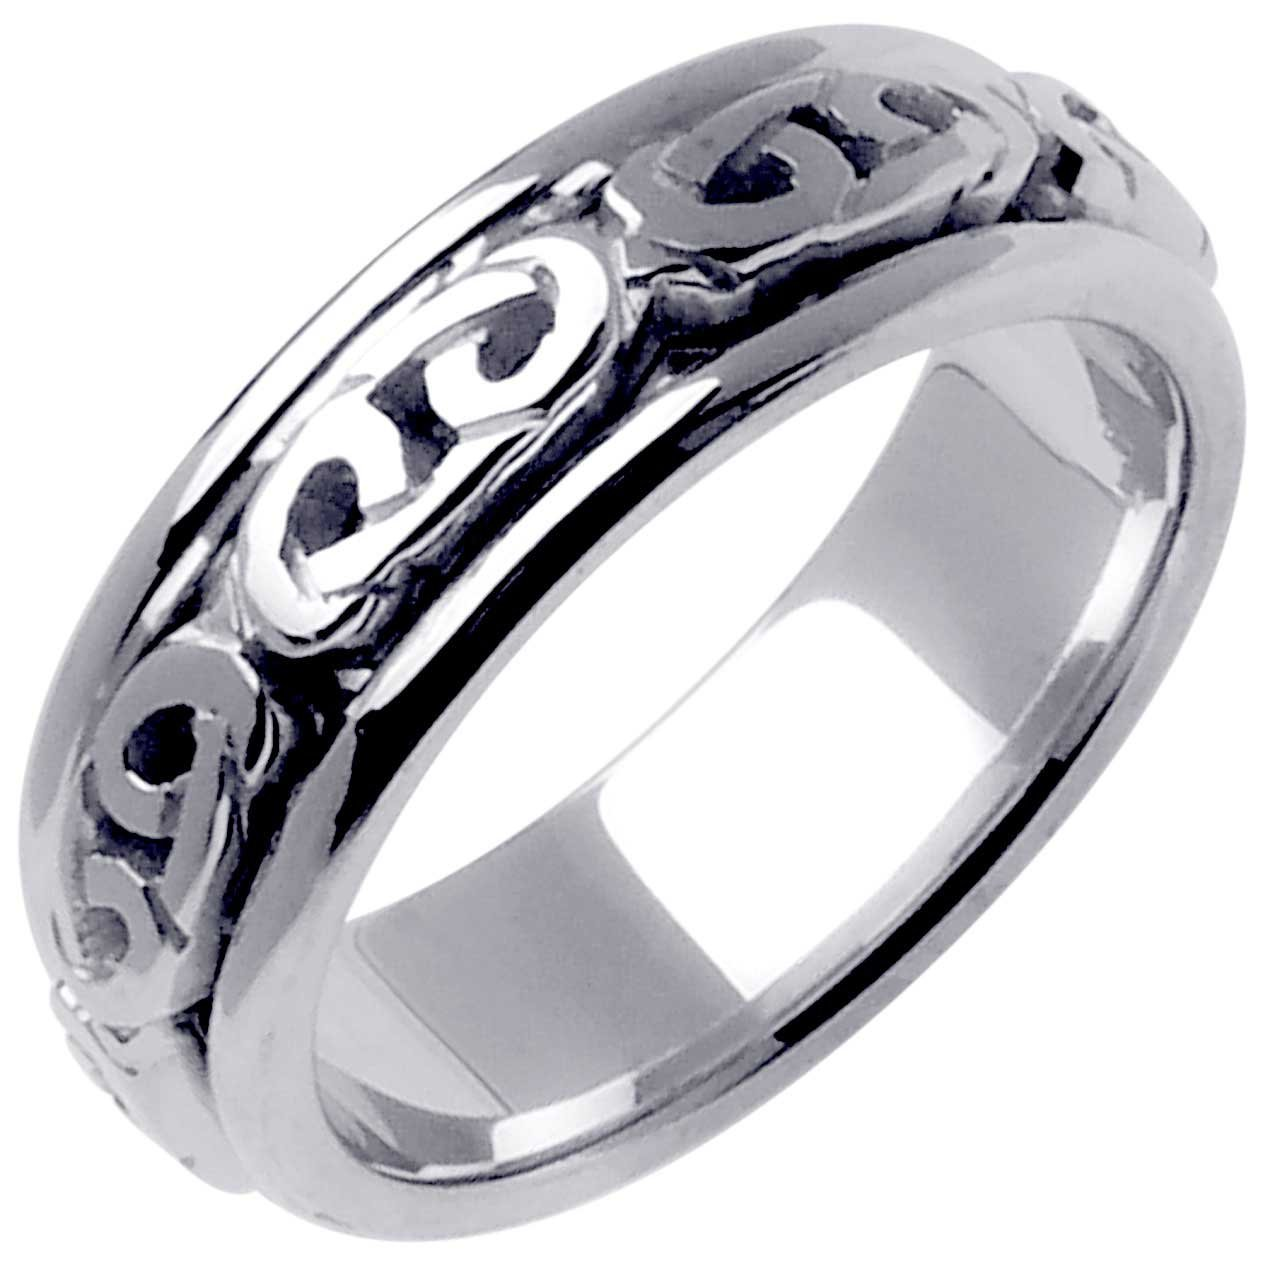 14K White Gold Celtic Love Knot Men's Comfort Fit Wedding Band (7mm) Size-9.25